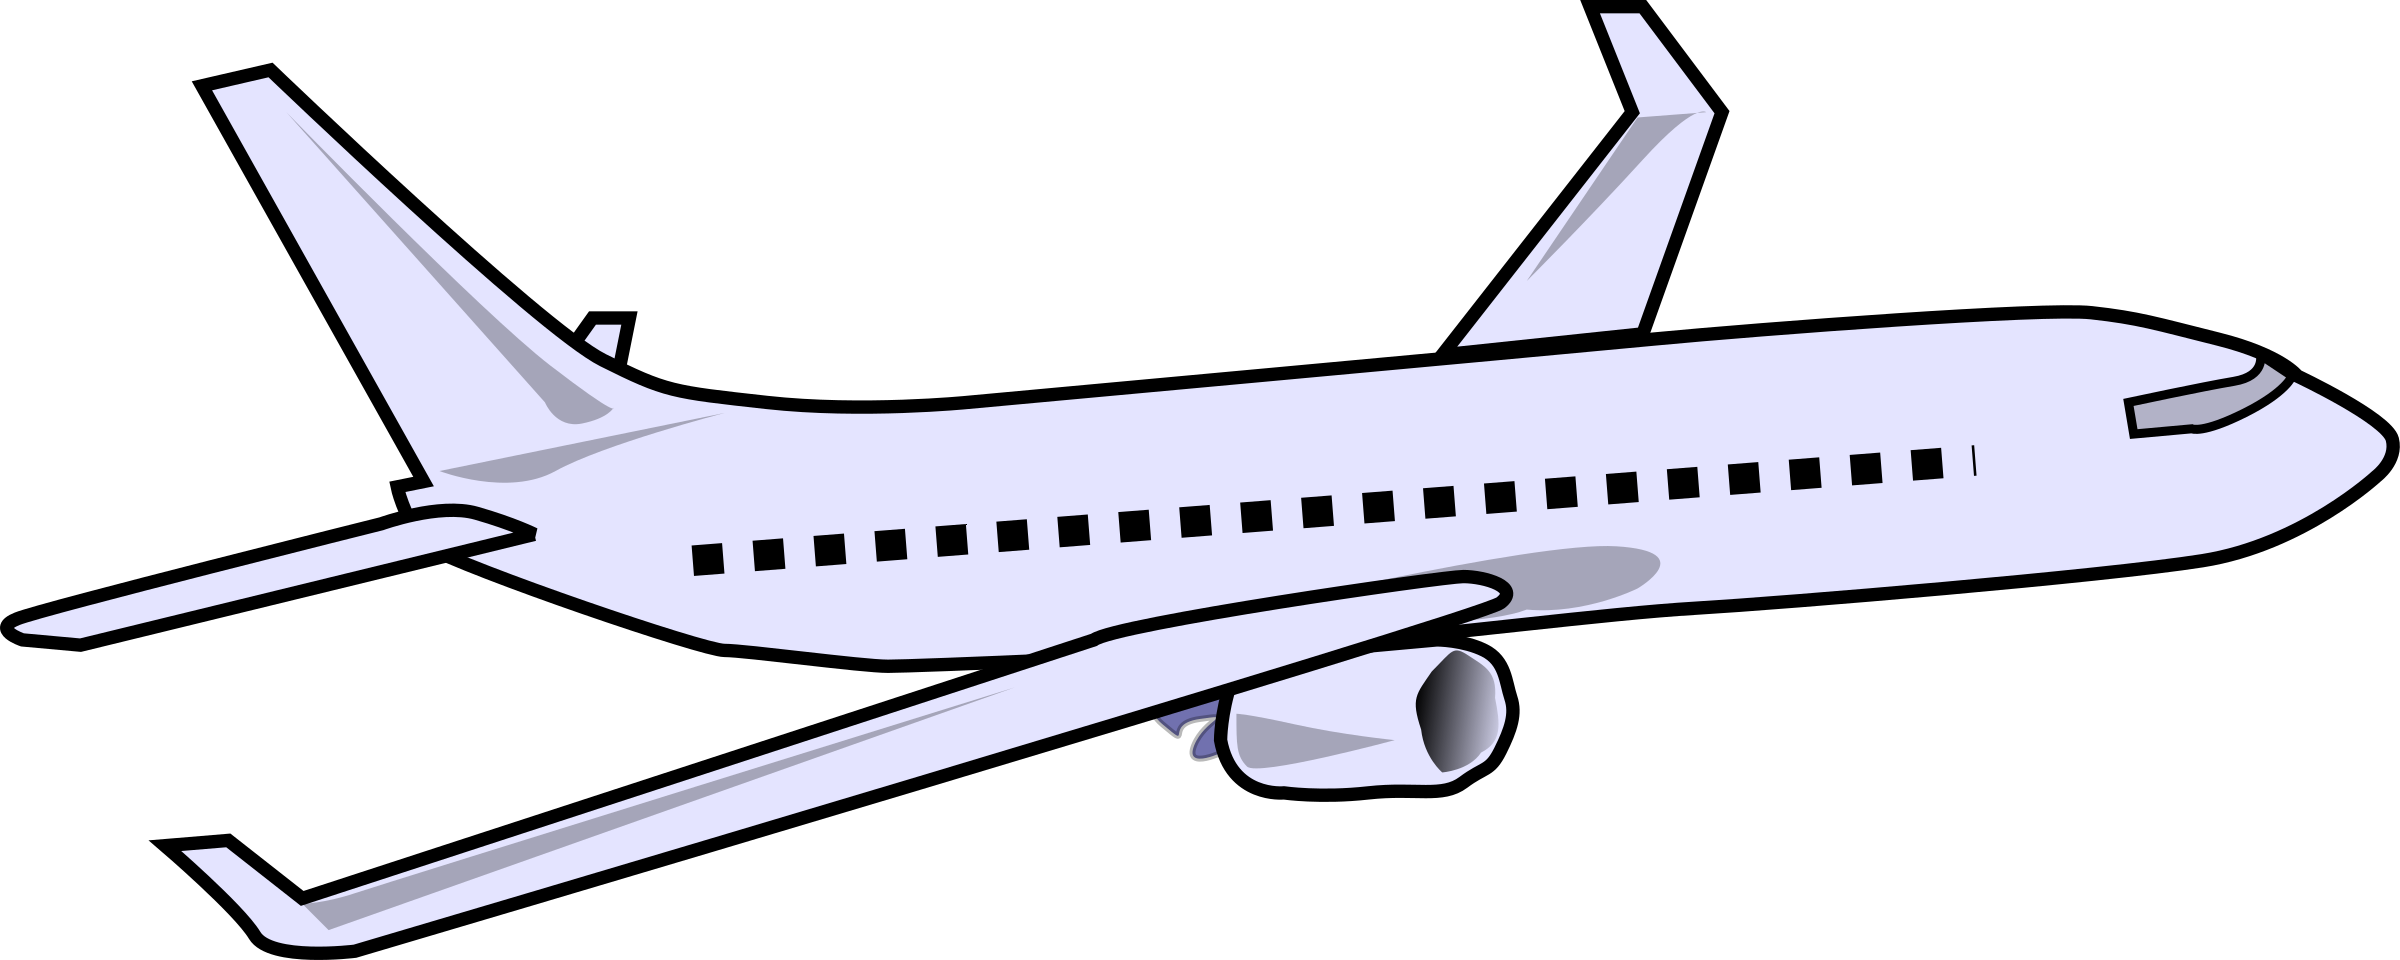 Aircraft vector passenger airplane. Jarno clipart picture of